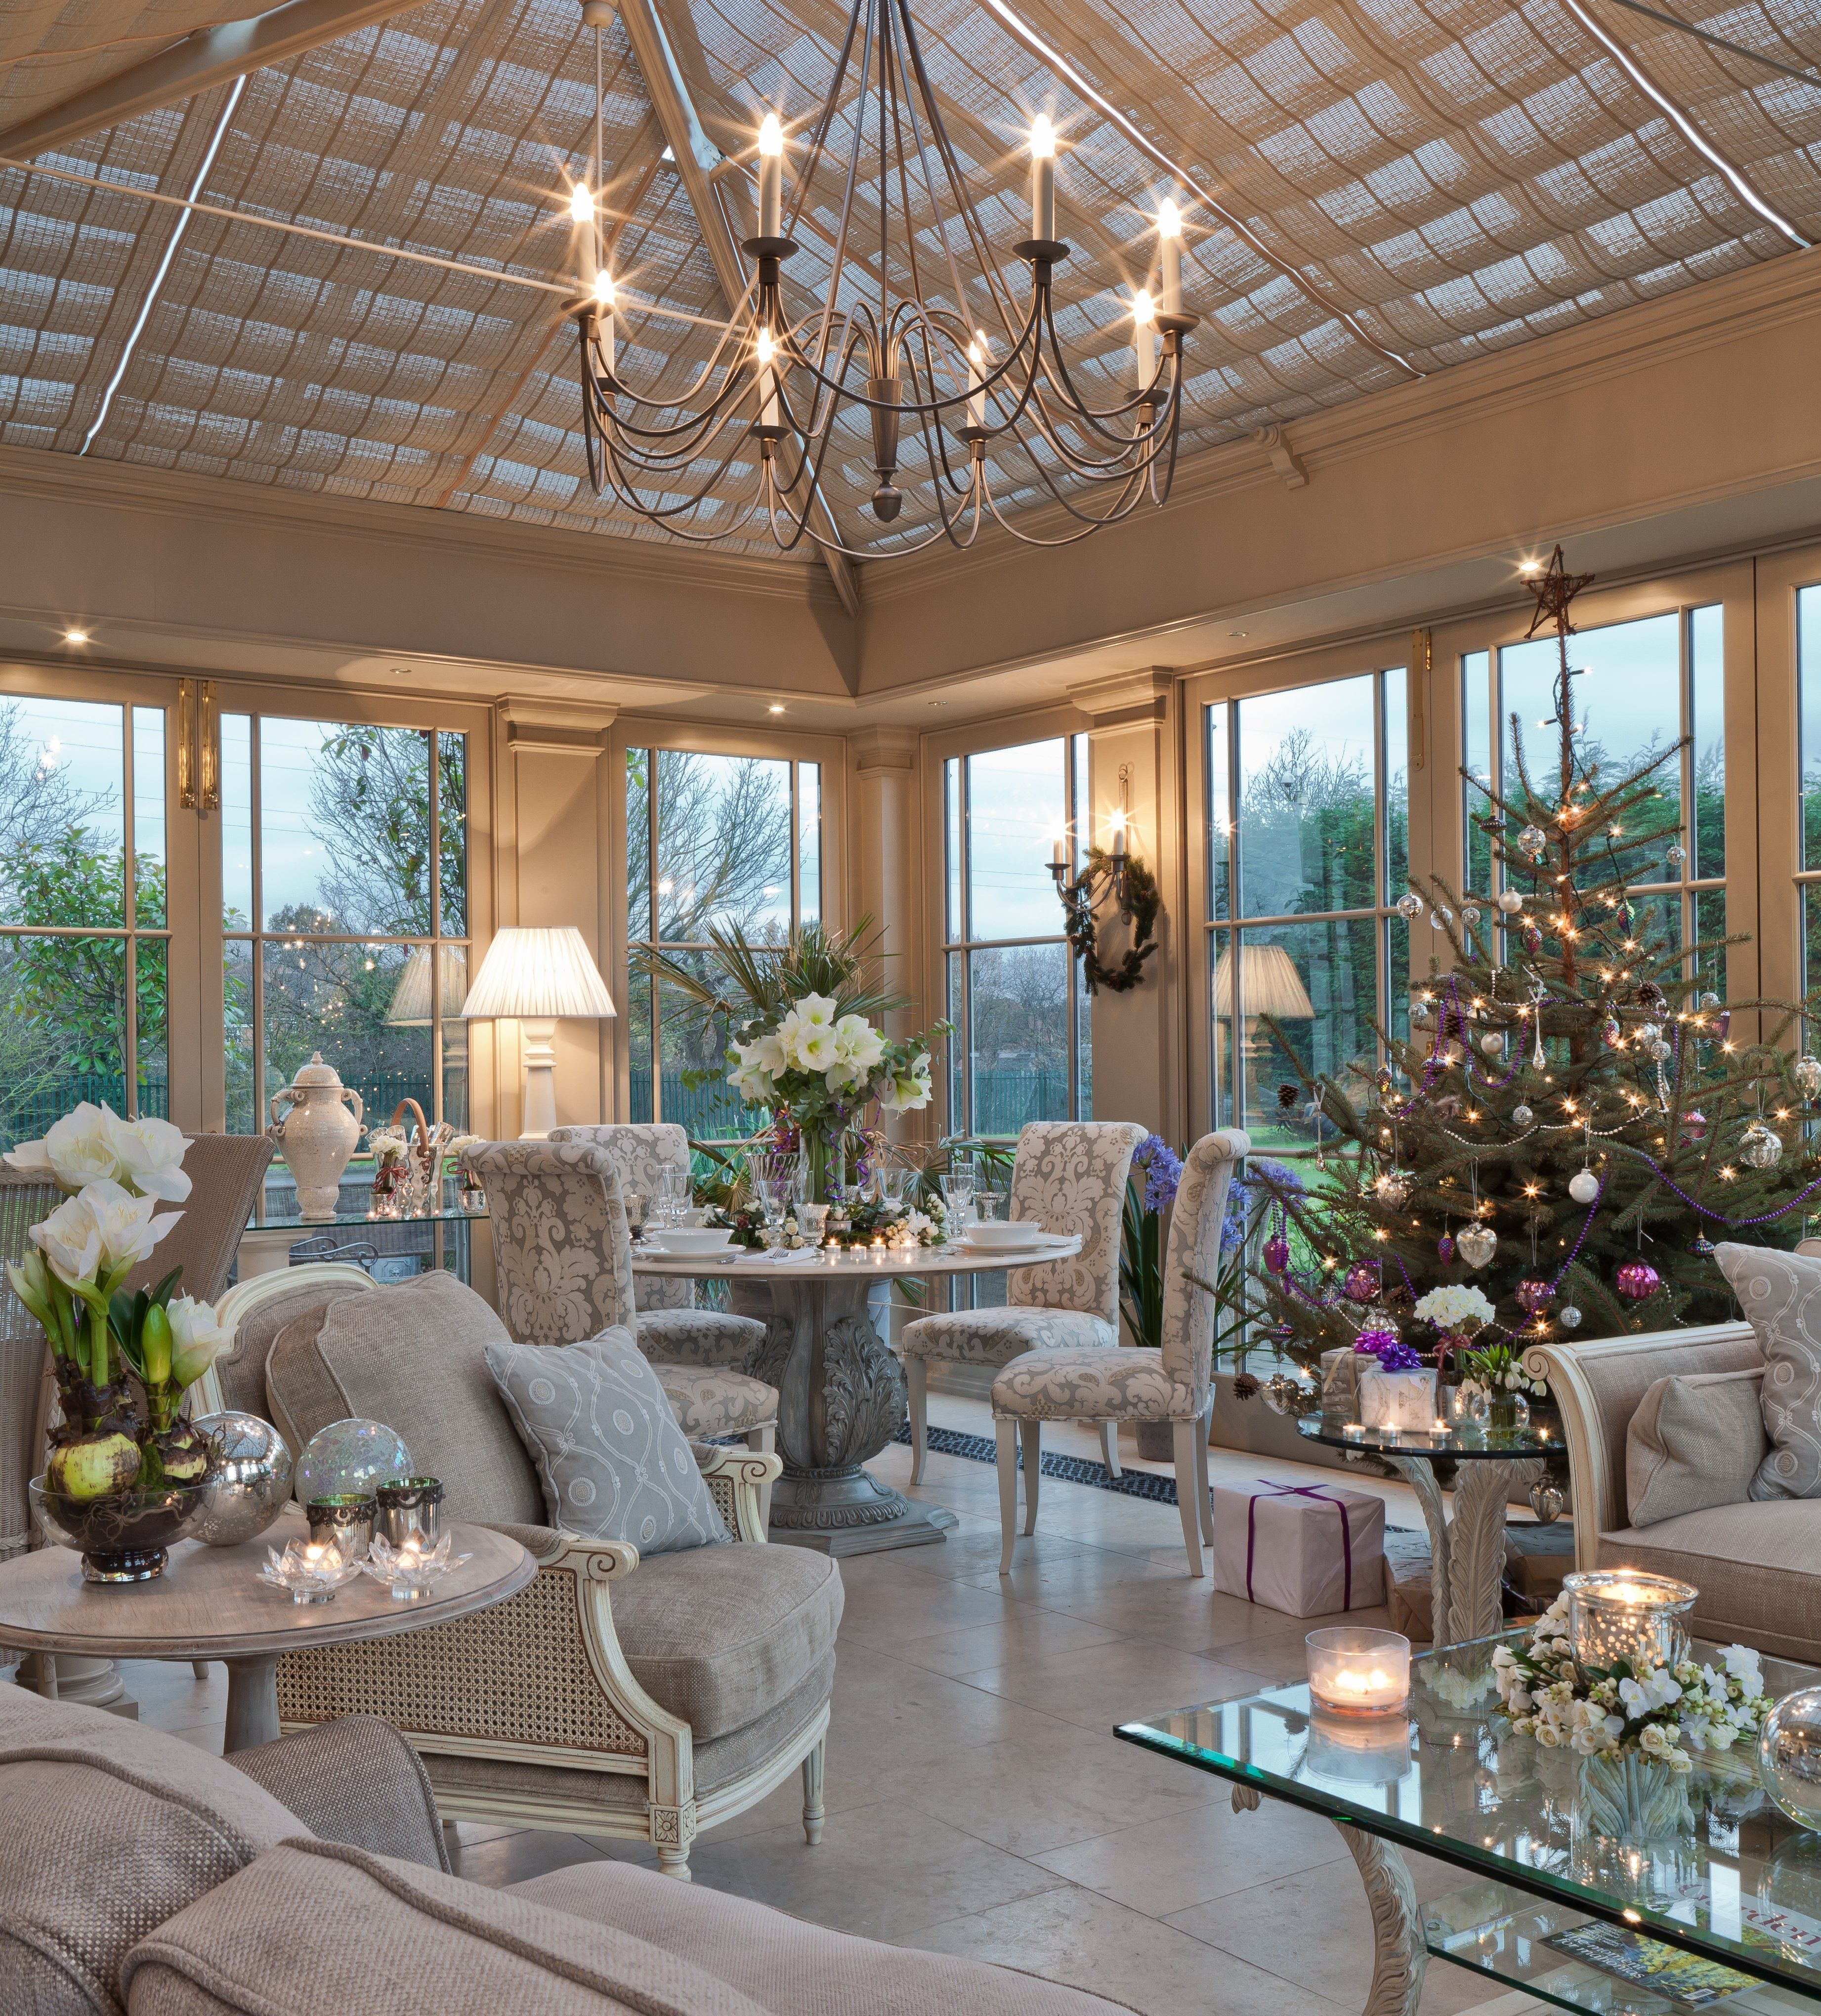 13 Best Images About Beautiful Interiors: Christmas Conservatory